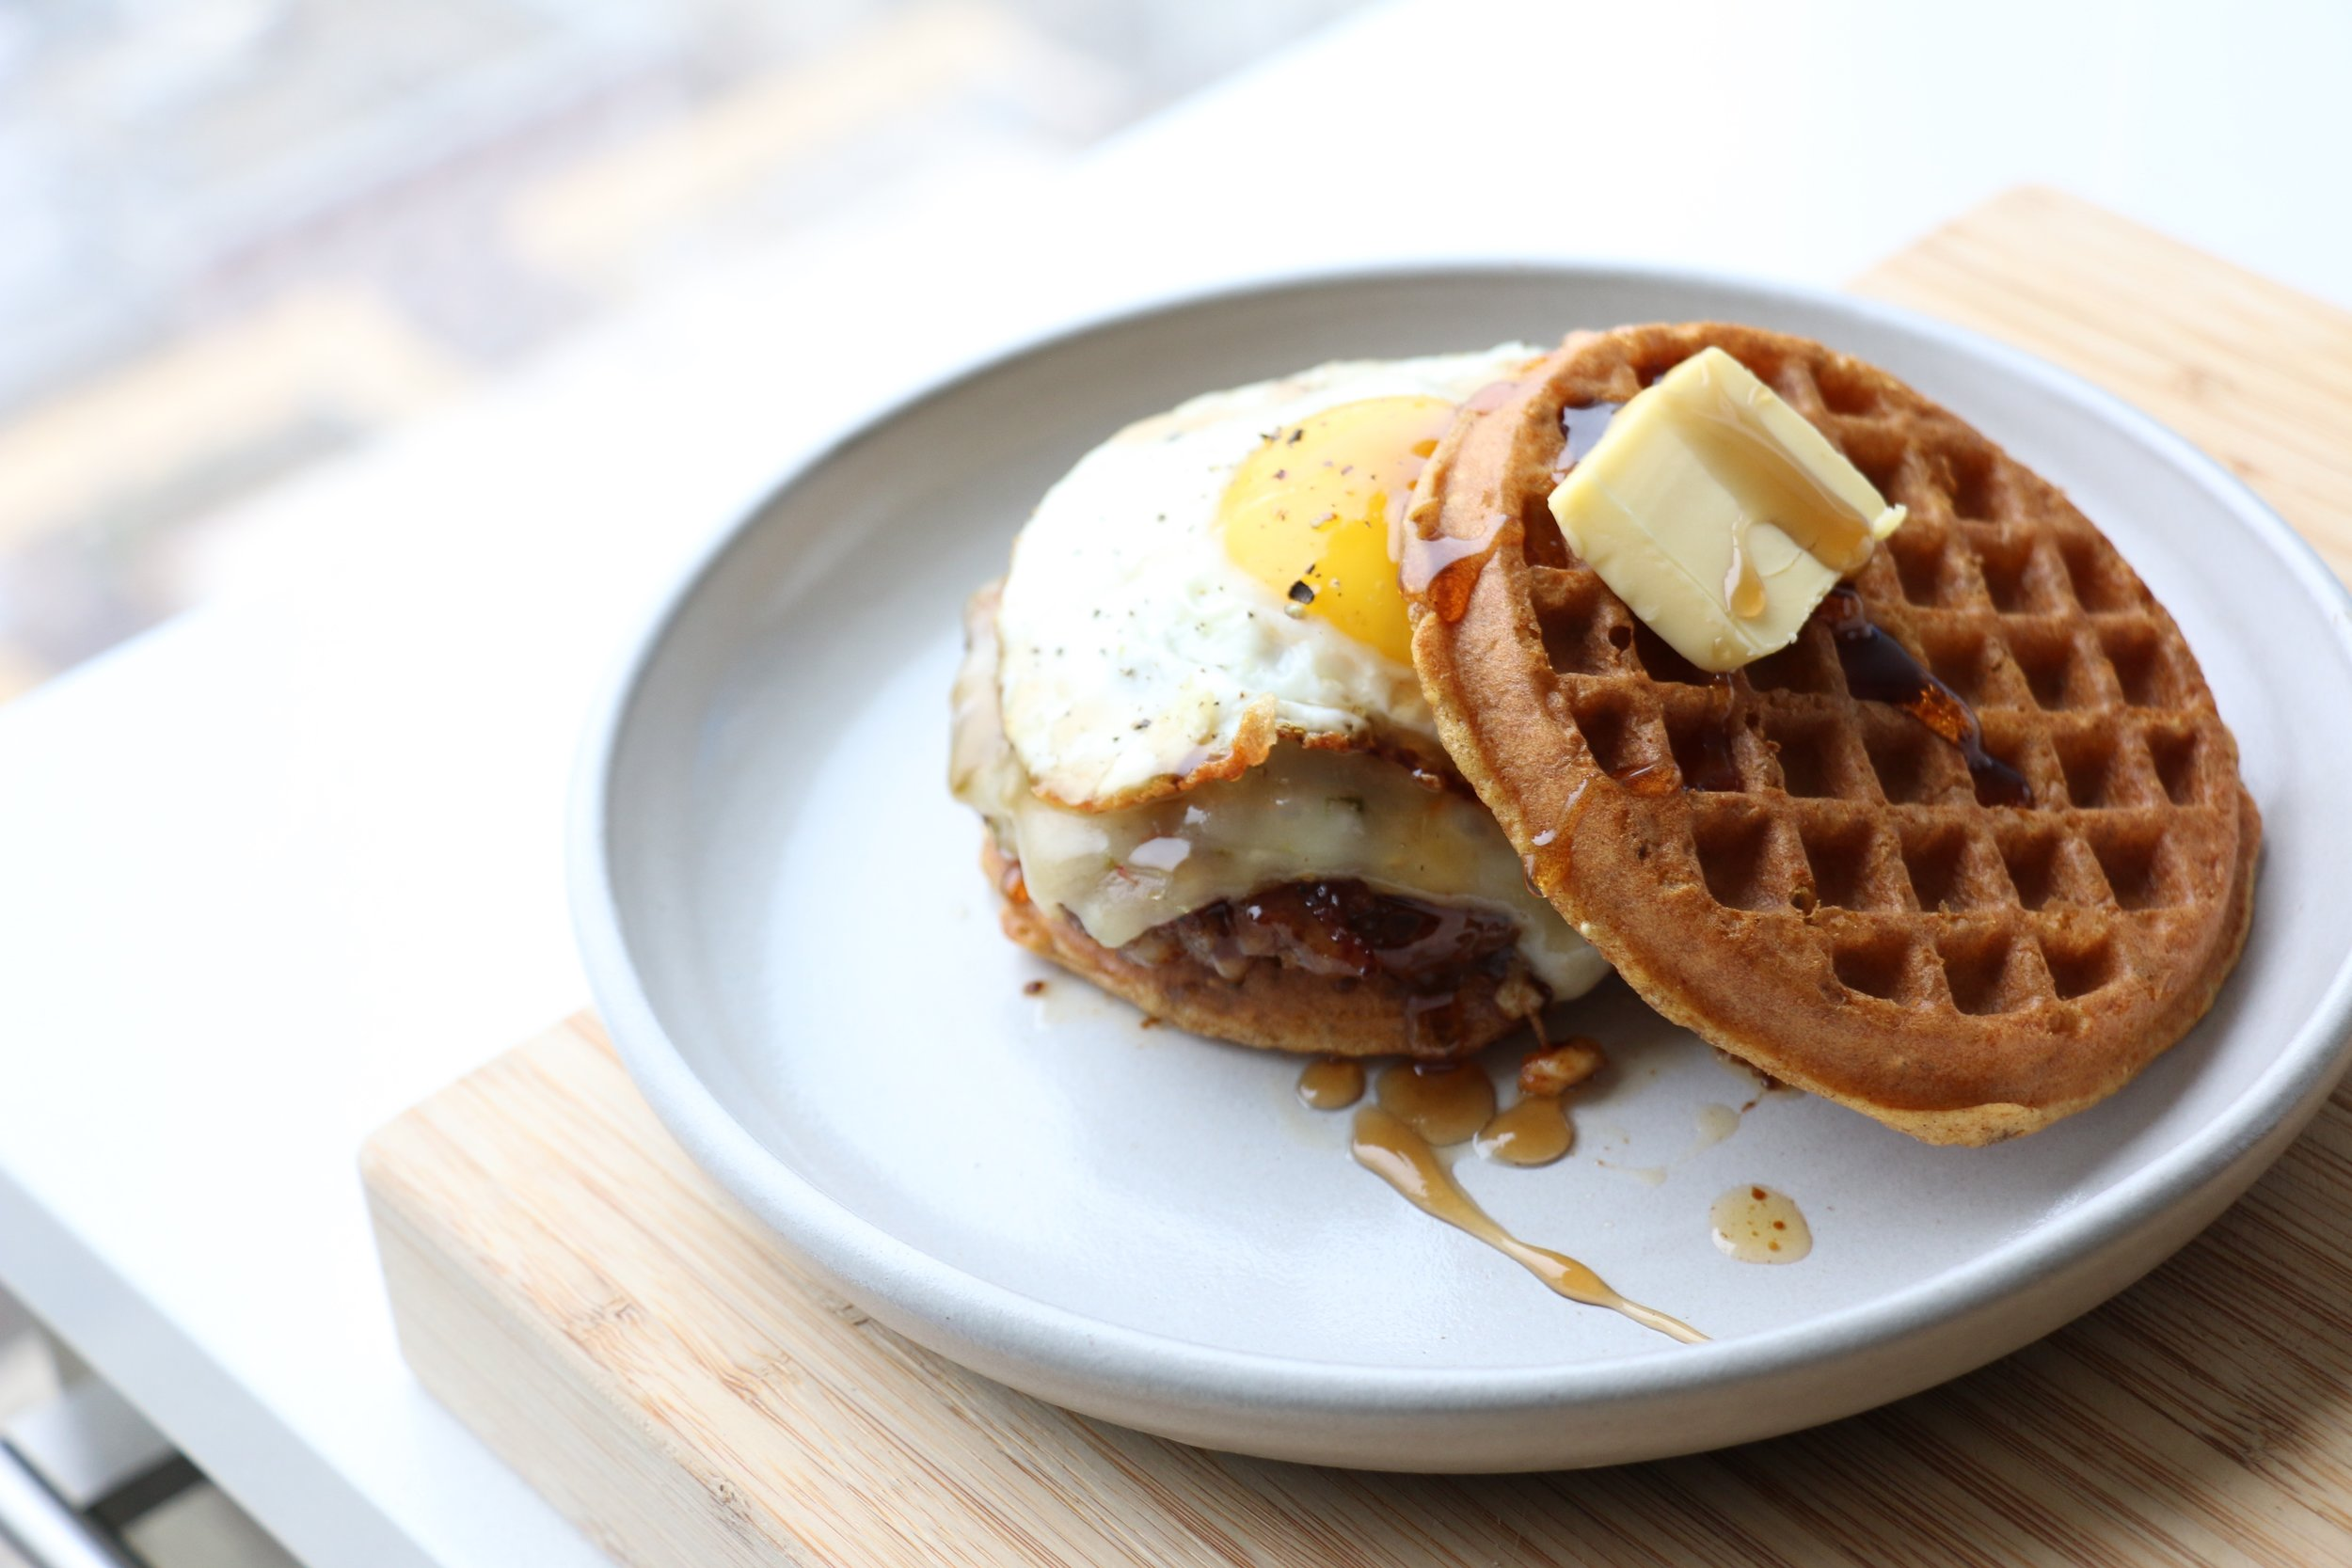 Top it off with the waffle, a slice of warm butter and drizzle some maple syrup on top